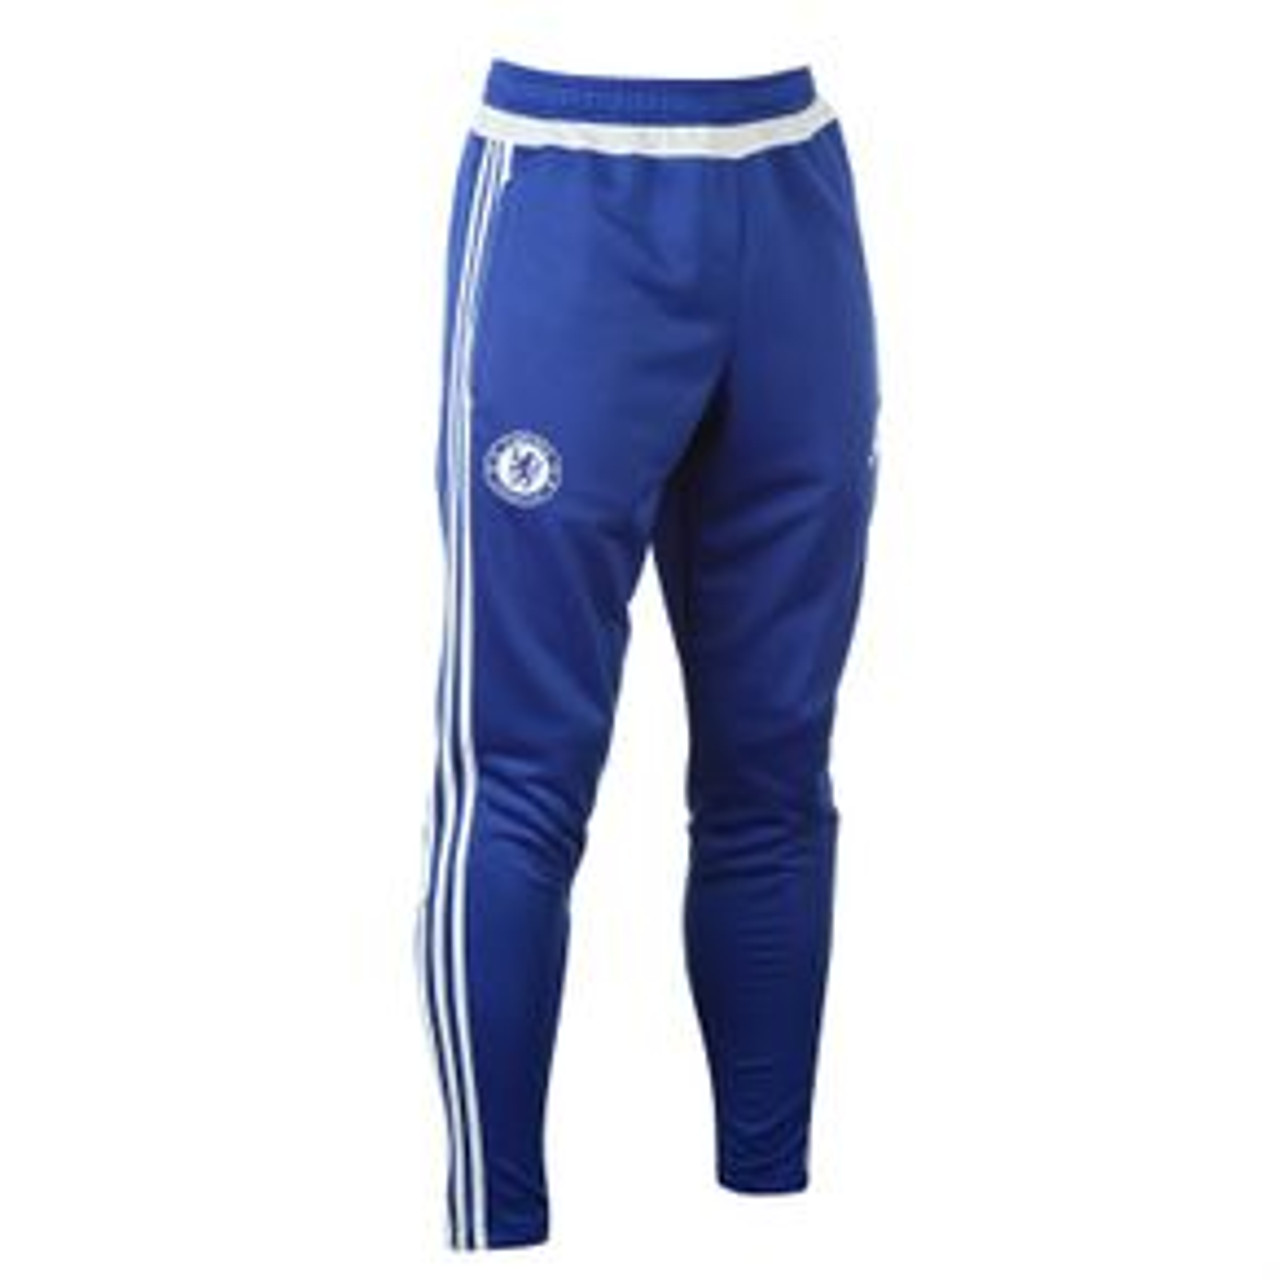 adidas pants youth